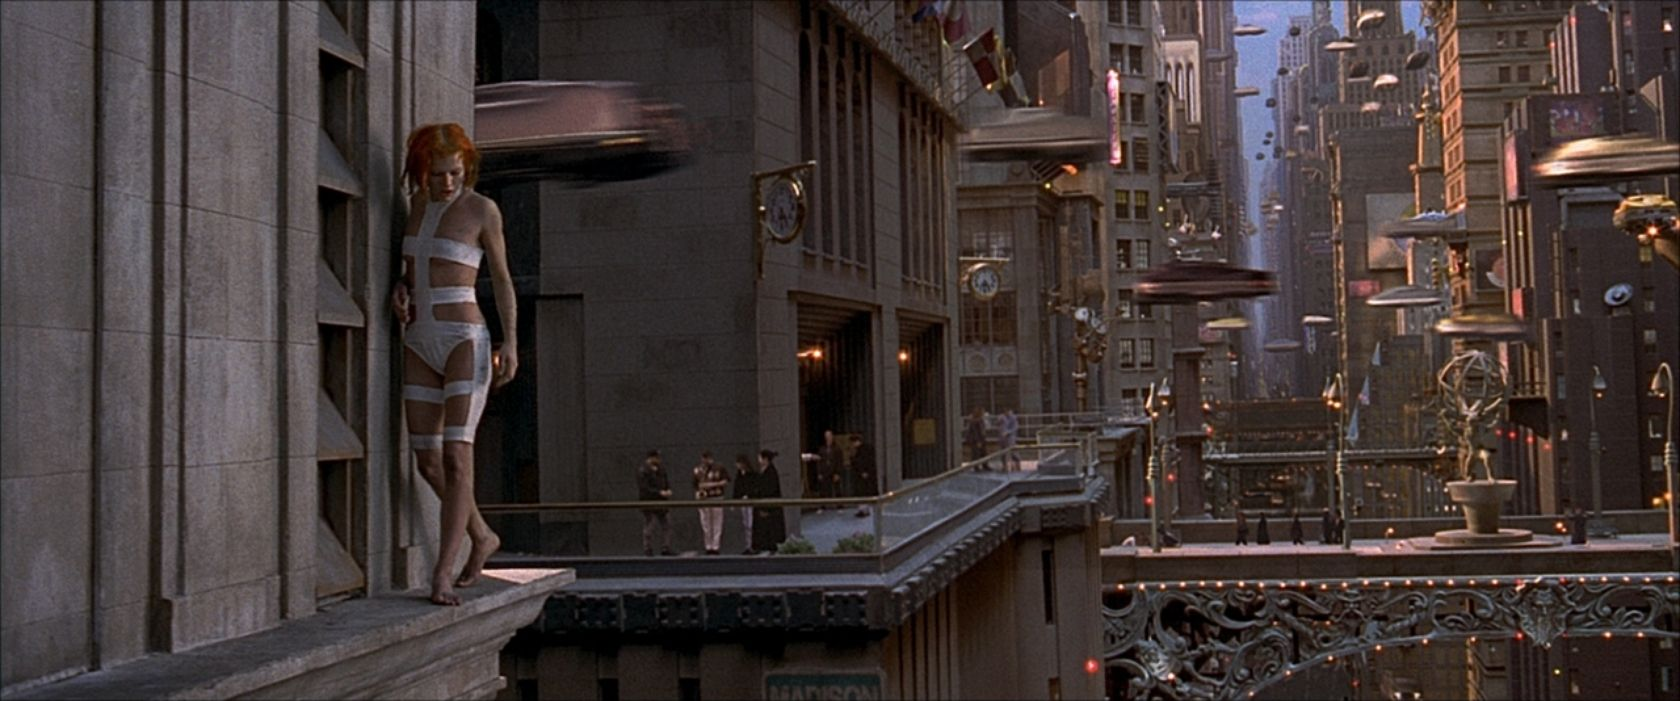 A Brief History Of Modern Architecture Through Movies